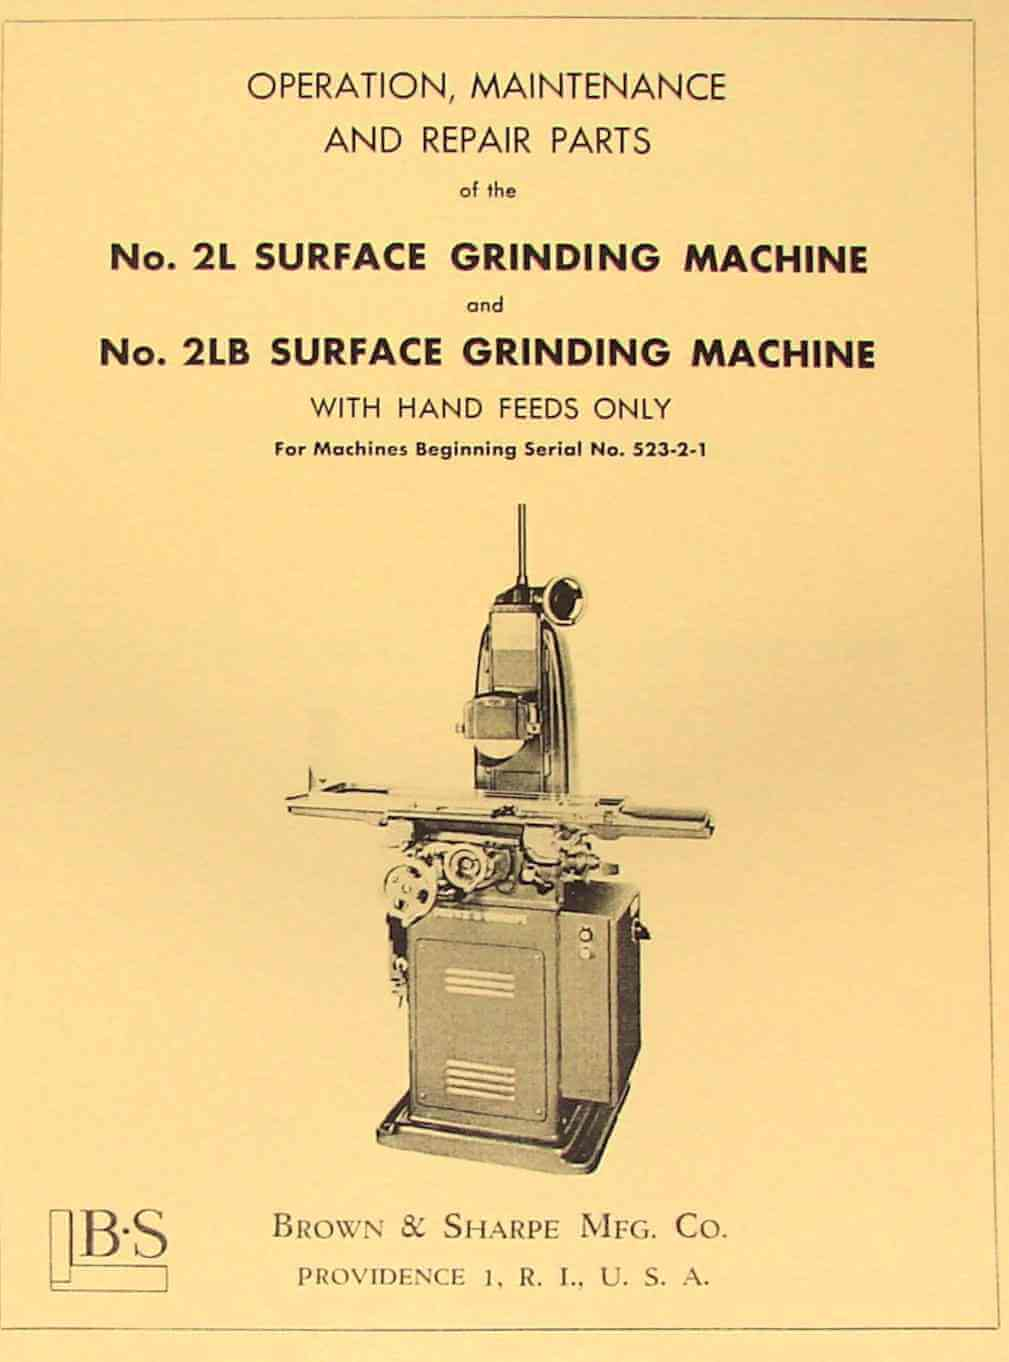 Surface Grinder Wiring Diagram 824 And Schematics For 2l 2lb Operator Parts Manual Ozark Tool Manuals Books